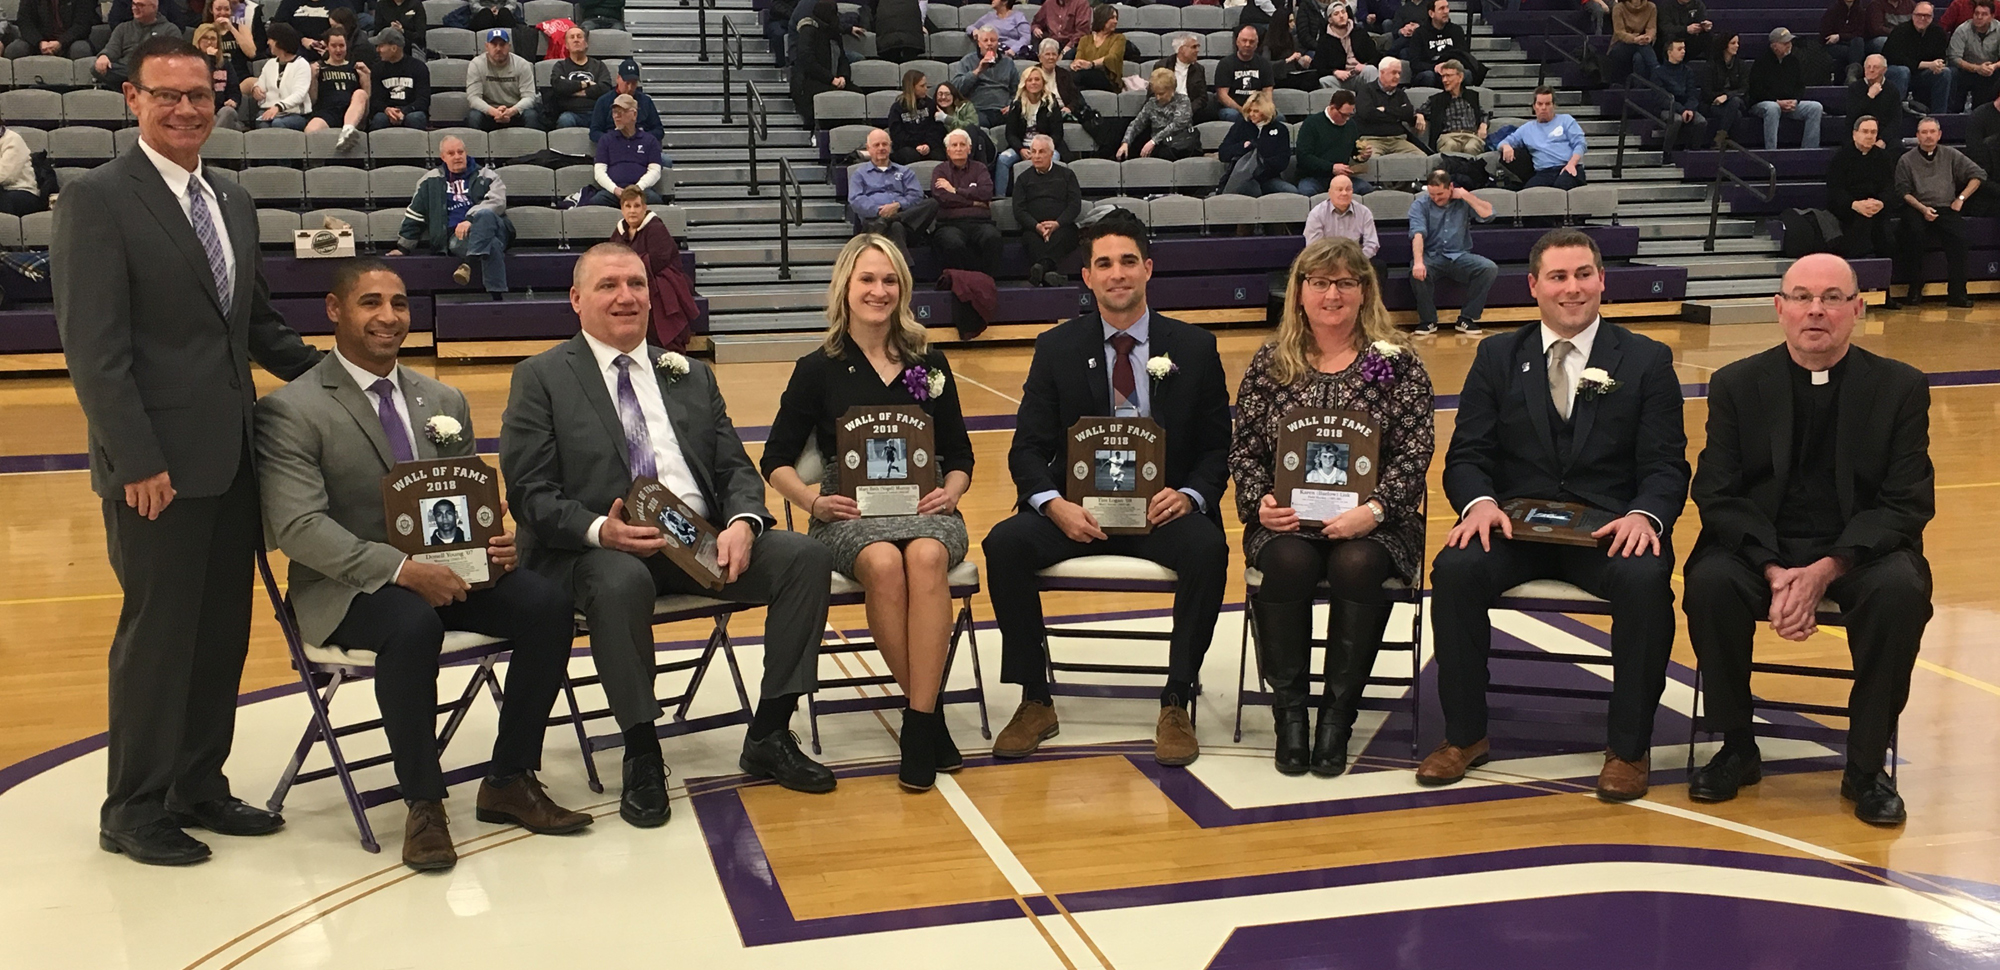 The Wall of Fame Class of 2018, seated from left: Donell Young'07, Frank Ross '87, Mary Beth (Vogel) Murray '08, Tim Logan '08, Karen (Barlow) Lisk '89, and Randy Arnold '08. Seated at the far right is Fr. Scott Pilarz, S.J., president of the University while Dave Martin, director of athletics, is standing at the far left.